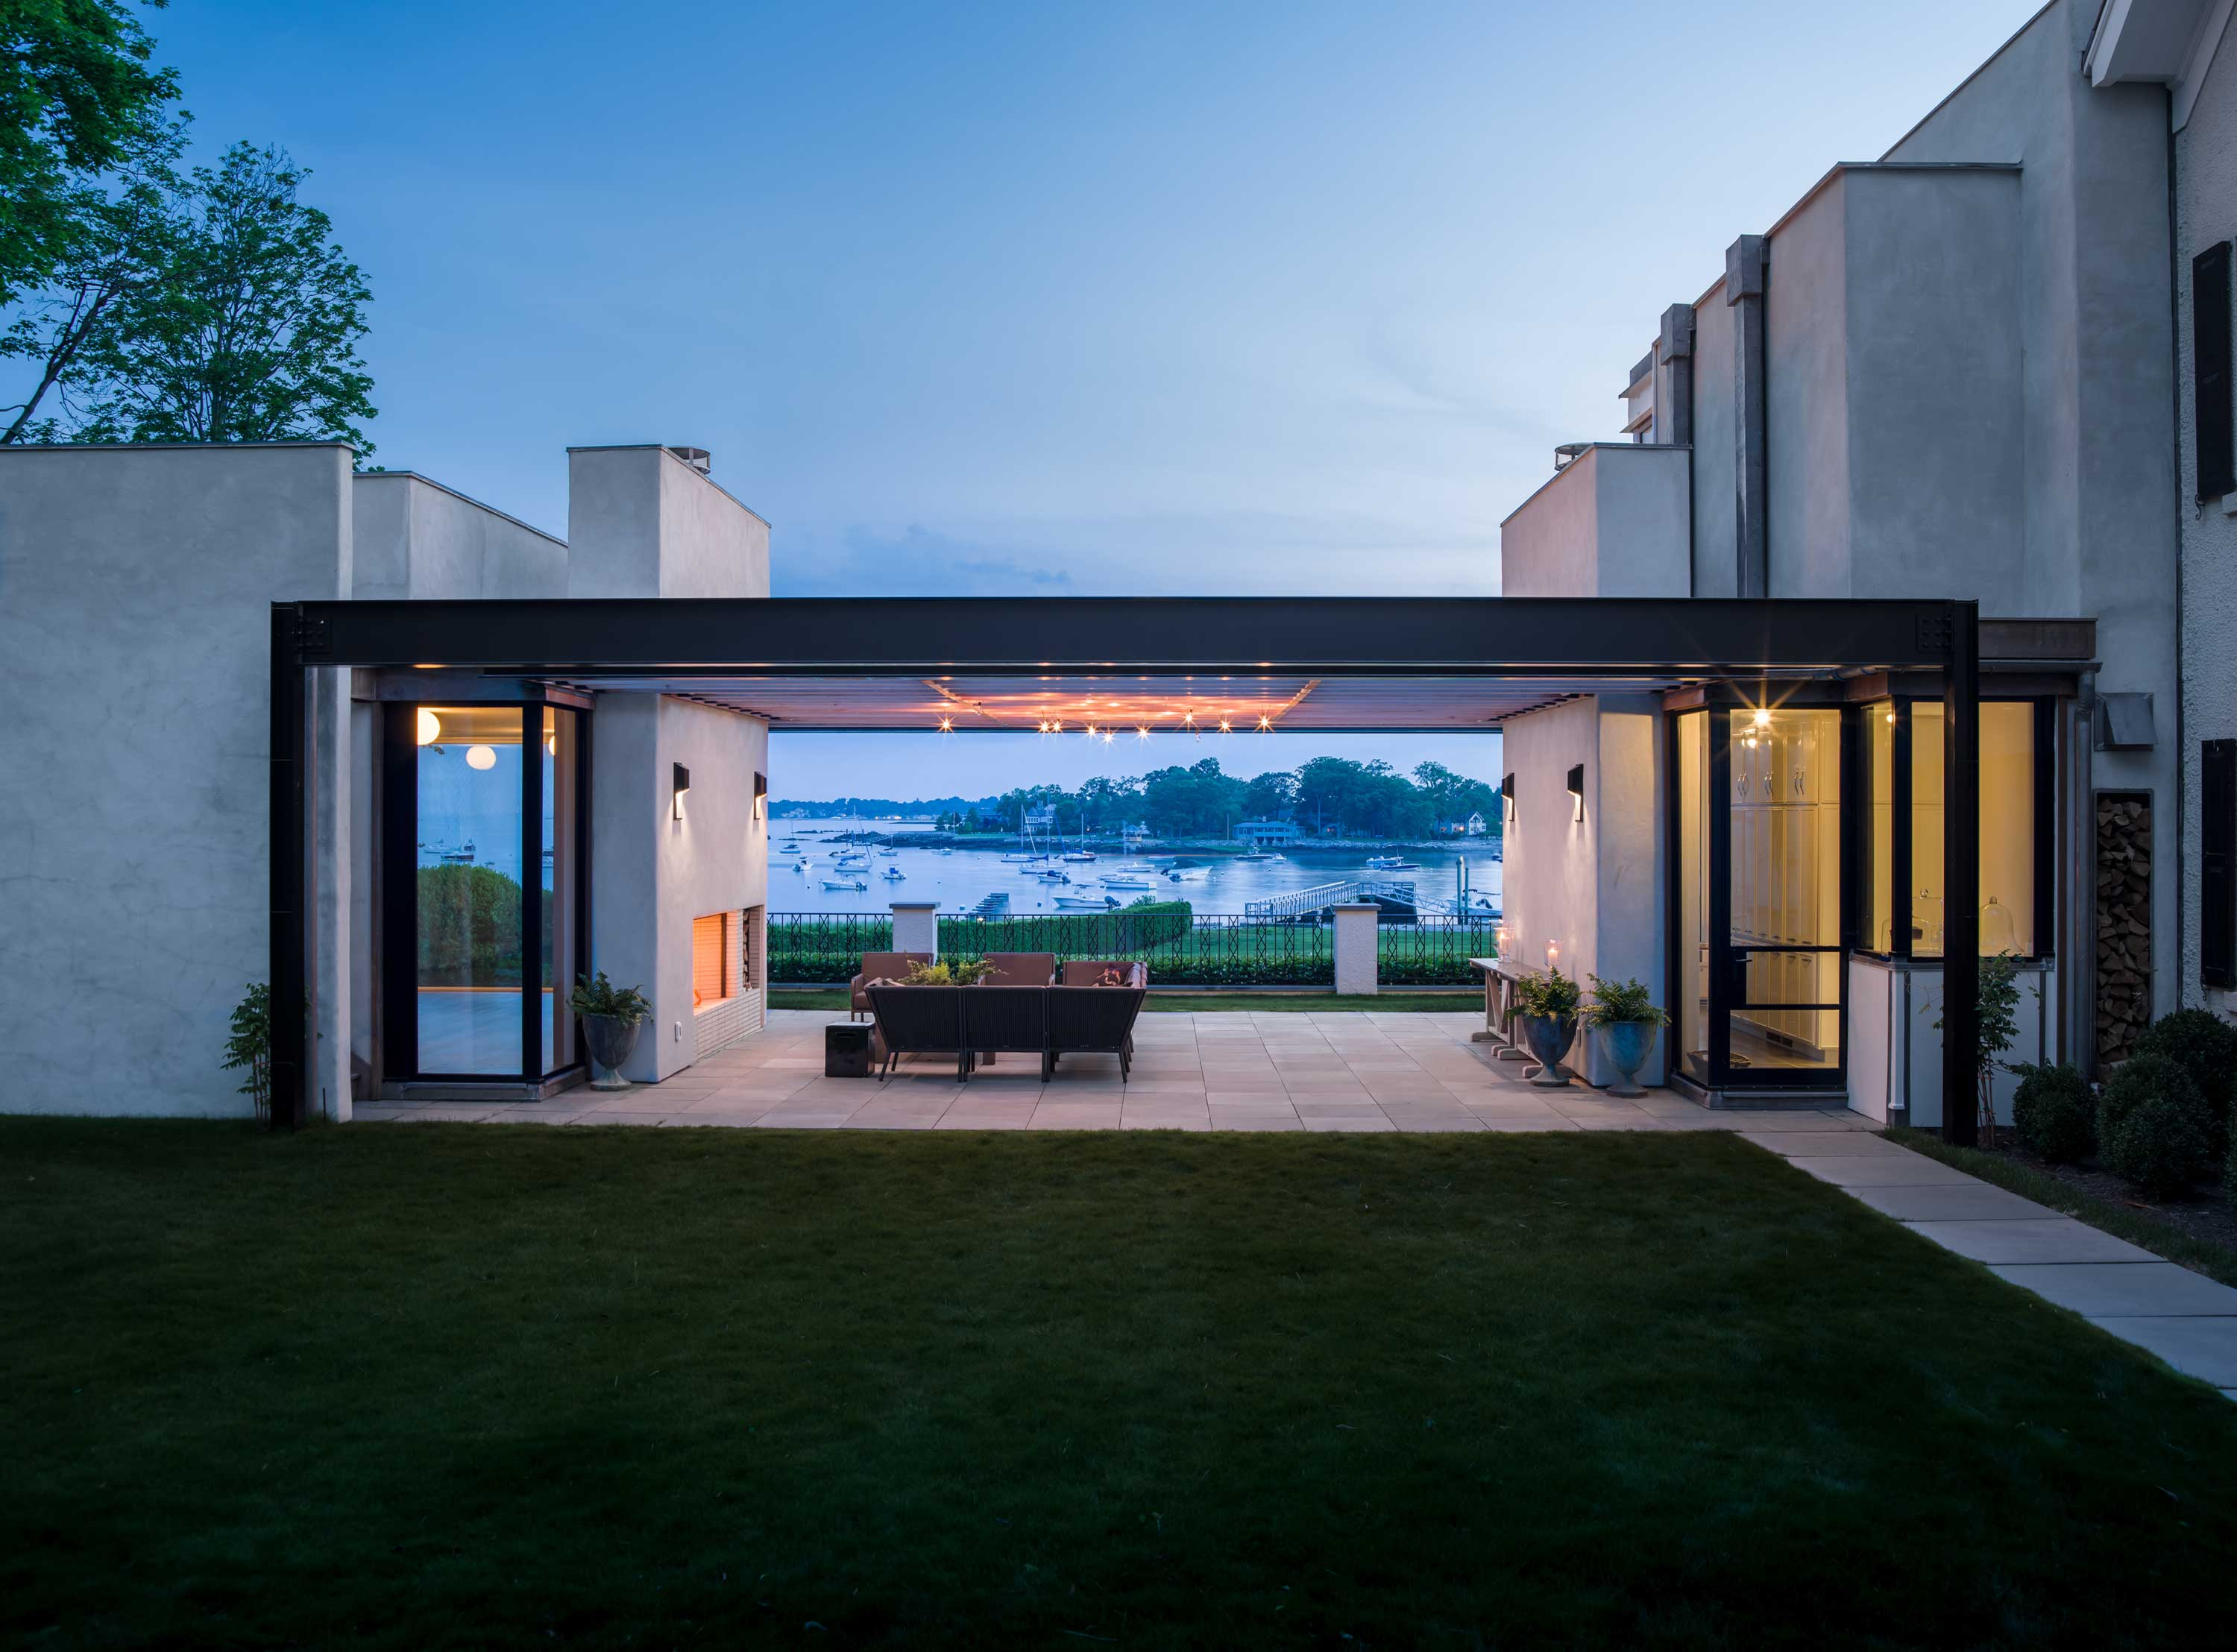 Framed by the picturesque backdrop of Long Island Sound, the outdoor entertaining terrace is a luminous haven with a fireplace and high-tech light installation.